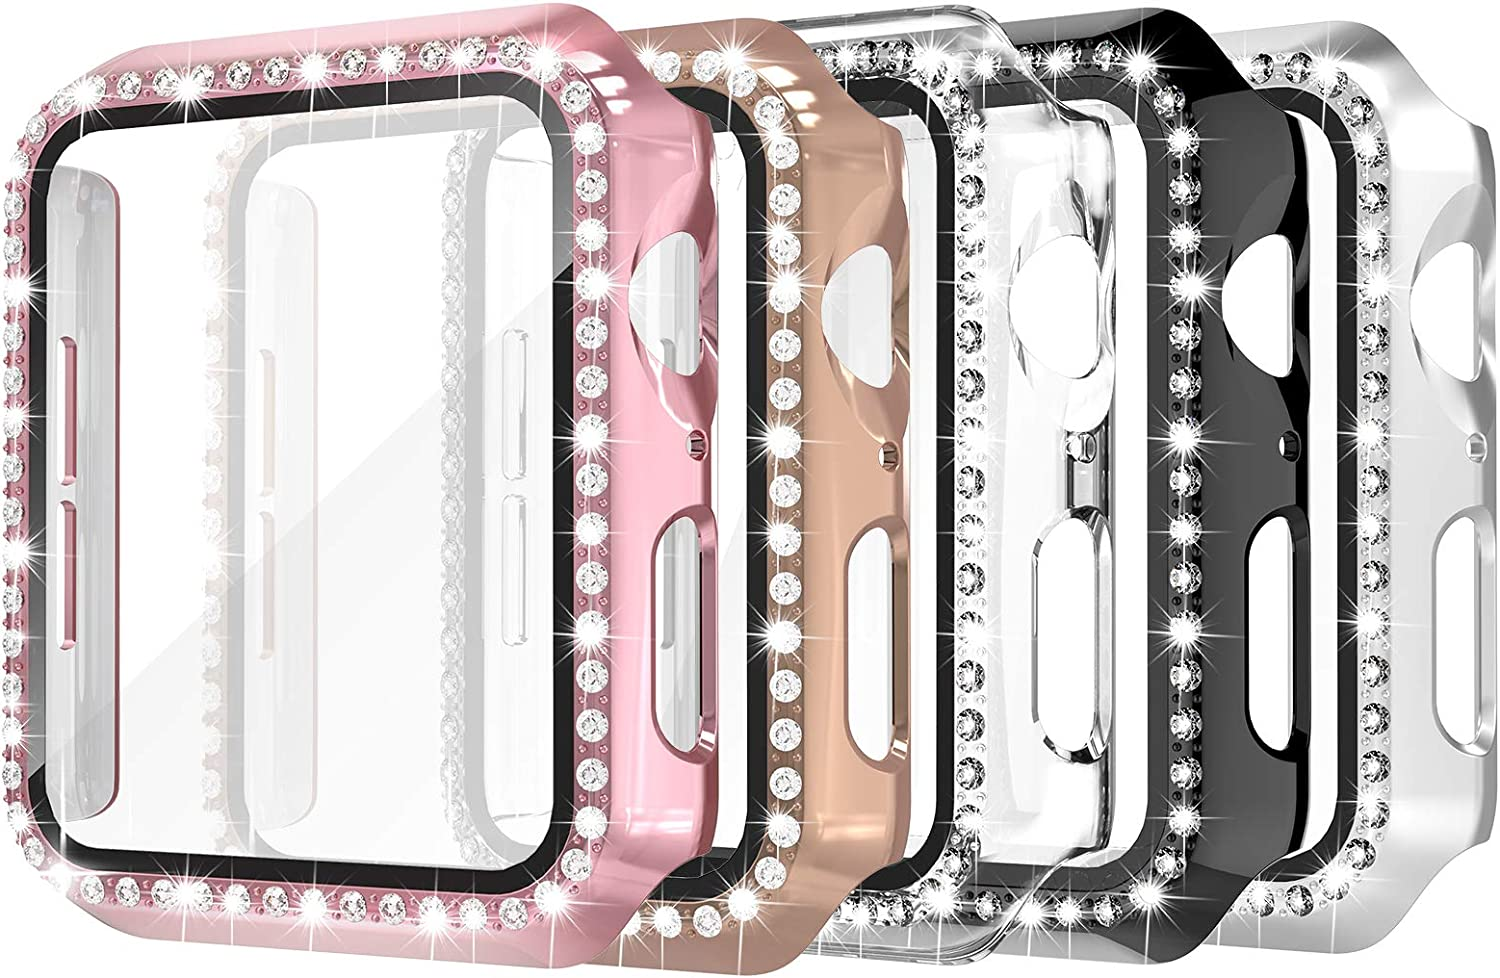 Simpeak 5 Pack 40mm Bling Hard Case Built-in Glass Screen Protector Compatible with Apple Watch Series 6 Se 5 4, Full Crystals Protector Case Replacement for iWatch 40mm, Gold/Pink/Black/Silver/Clear